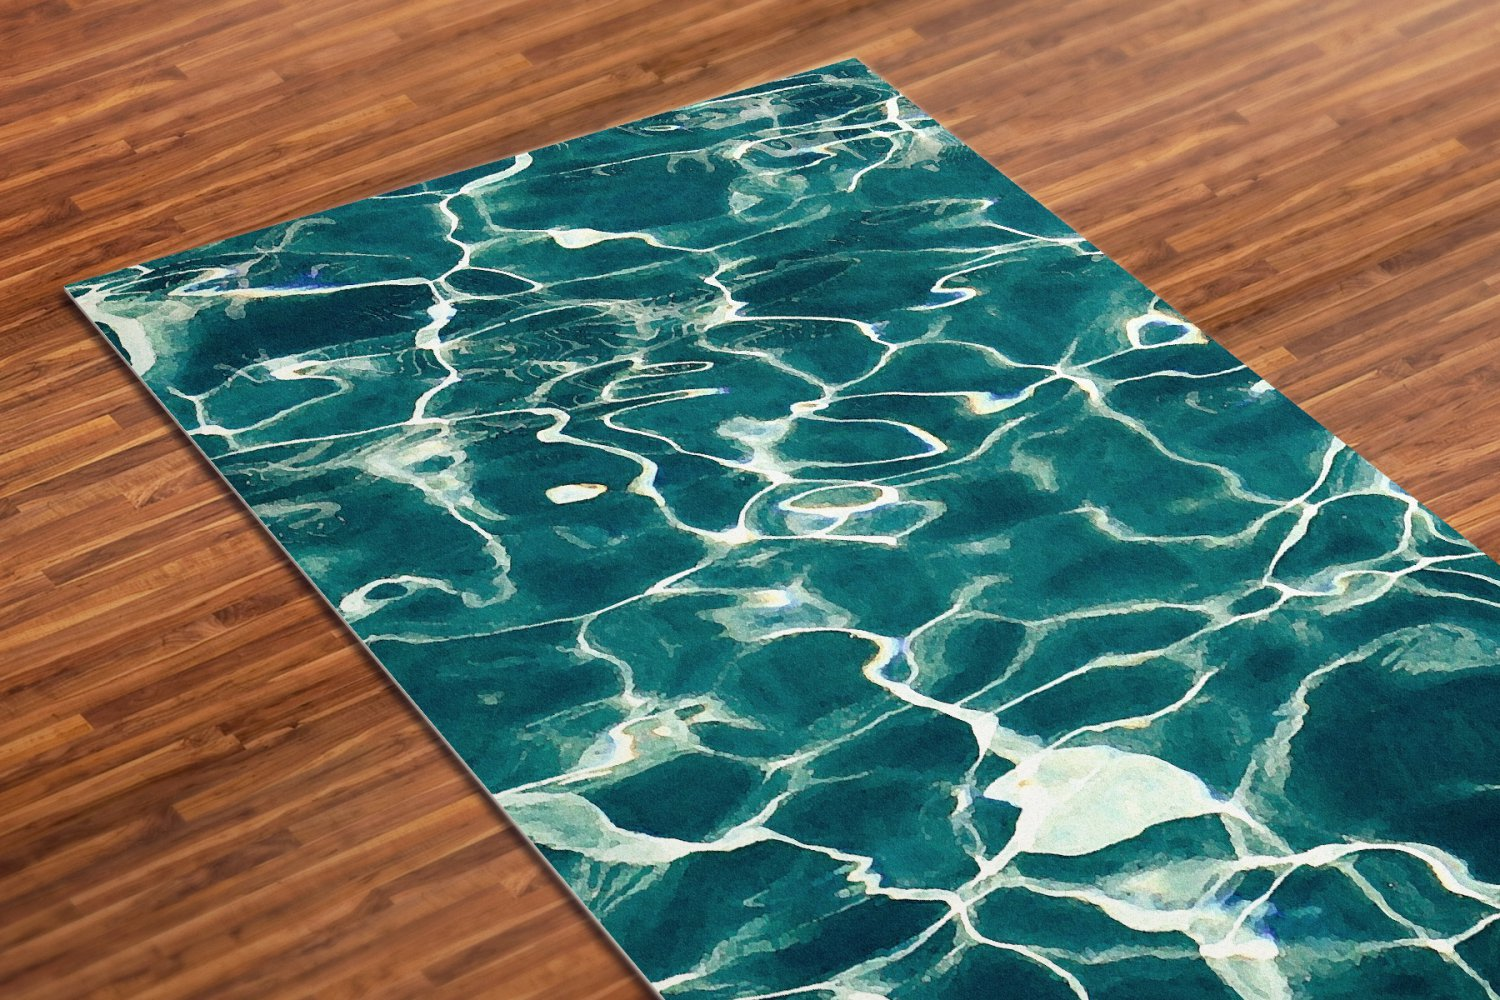 Water Printed Yoga Mat Thick 5 mm 24 x 72 Pilates Blue Decor Rug Gift Fitness Exercise Meditation